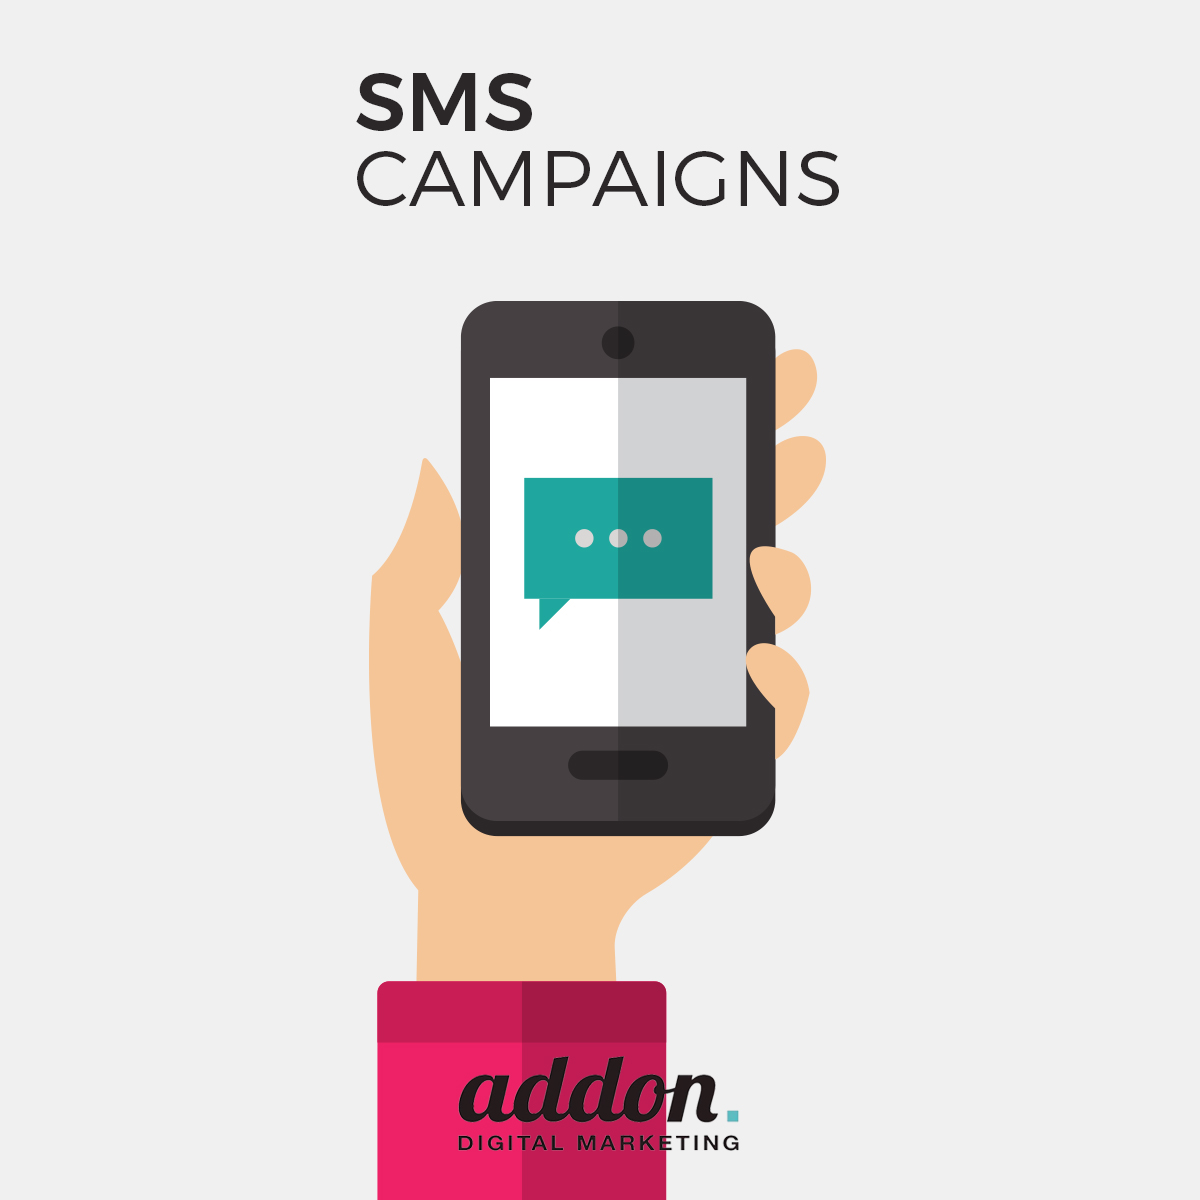 SMS Campaigns